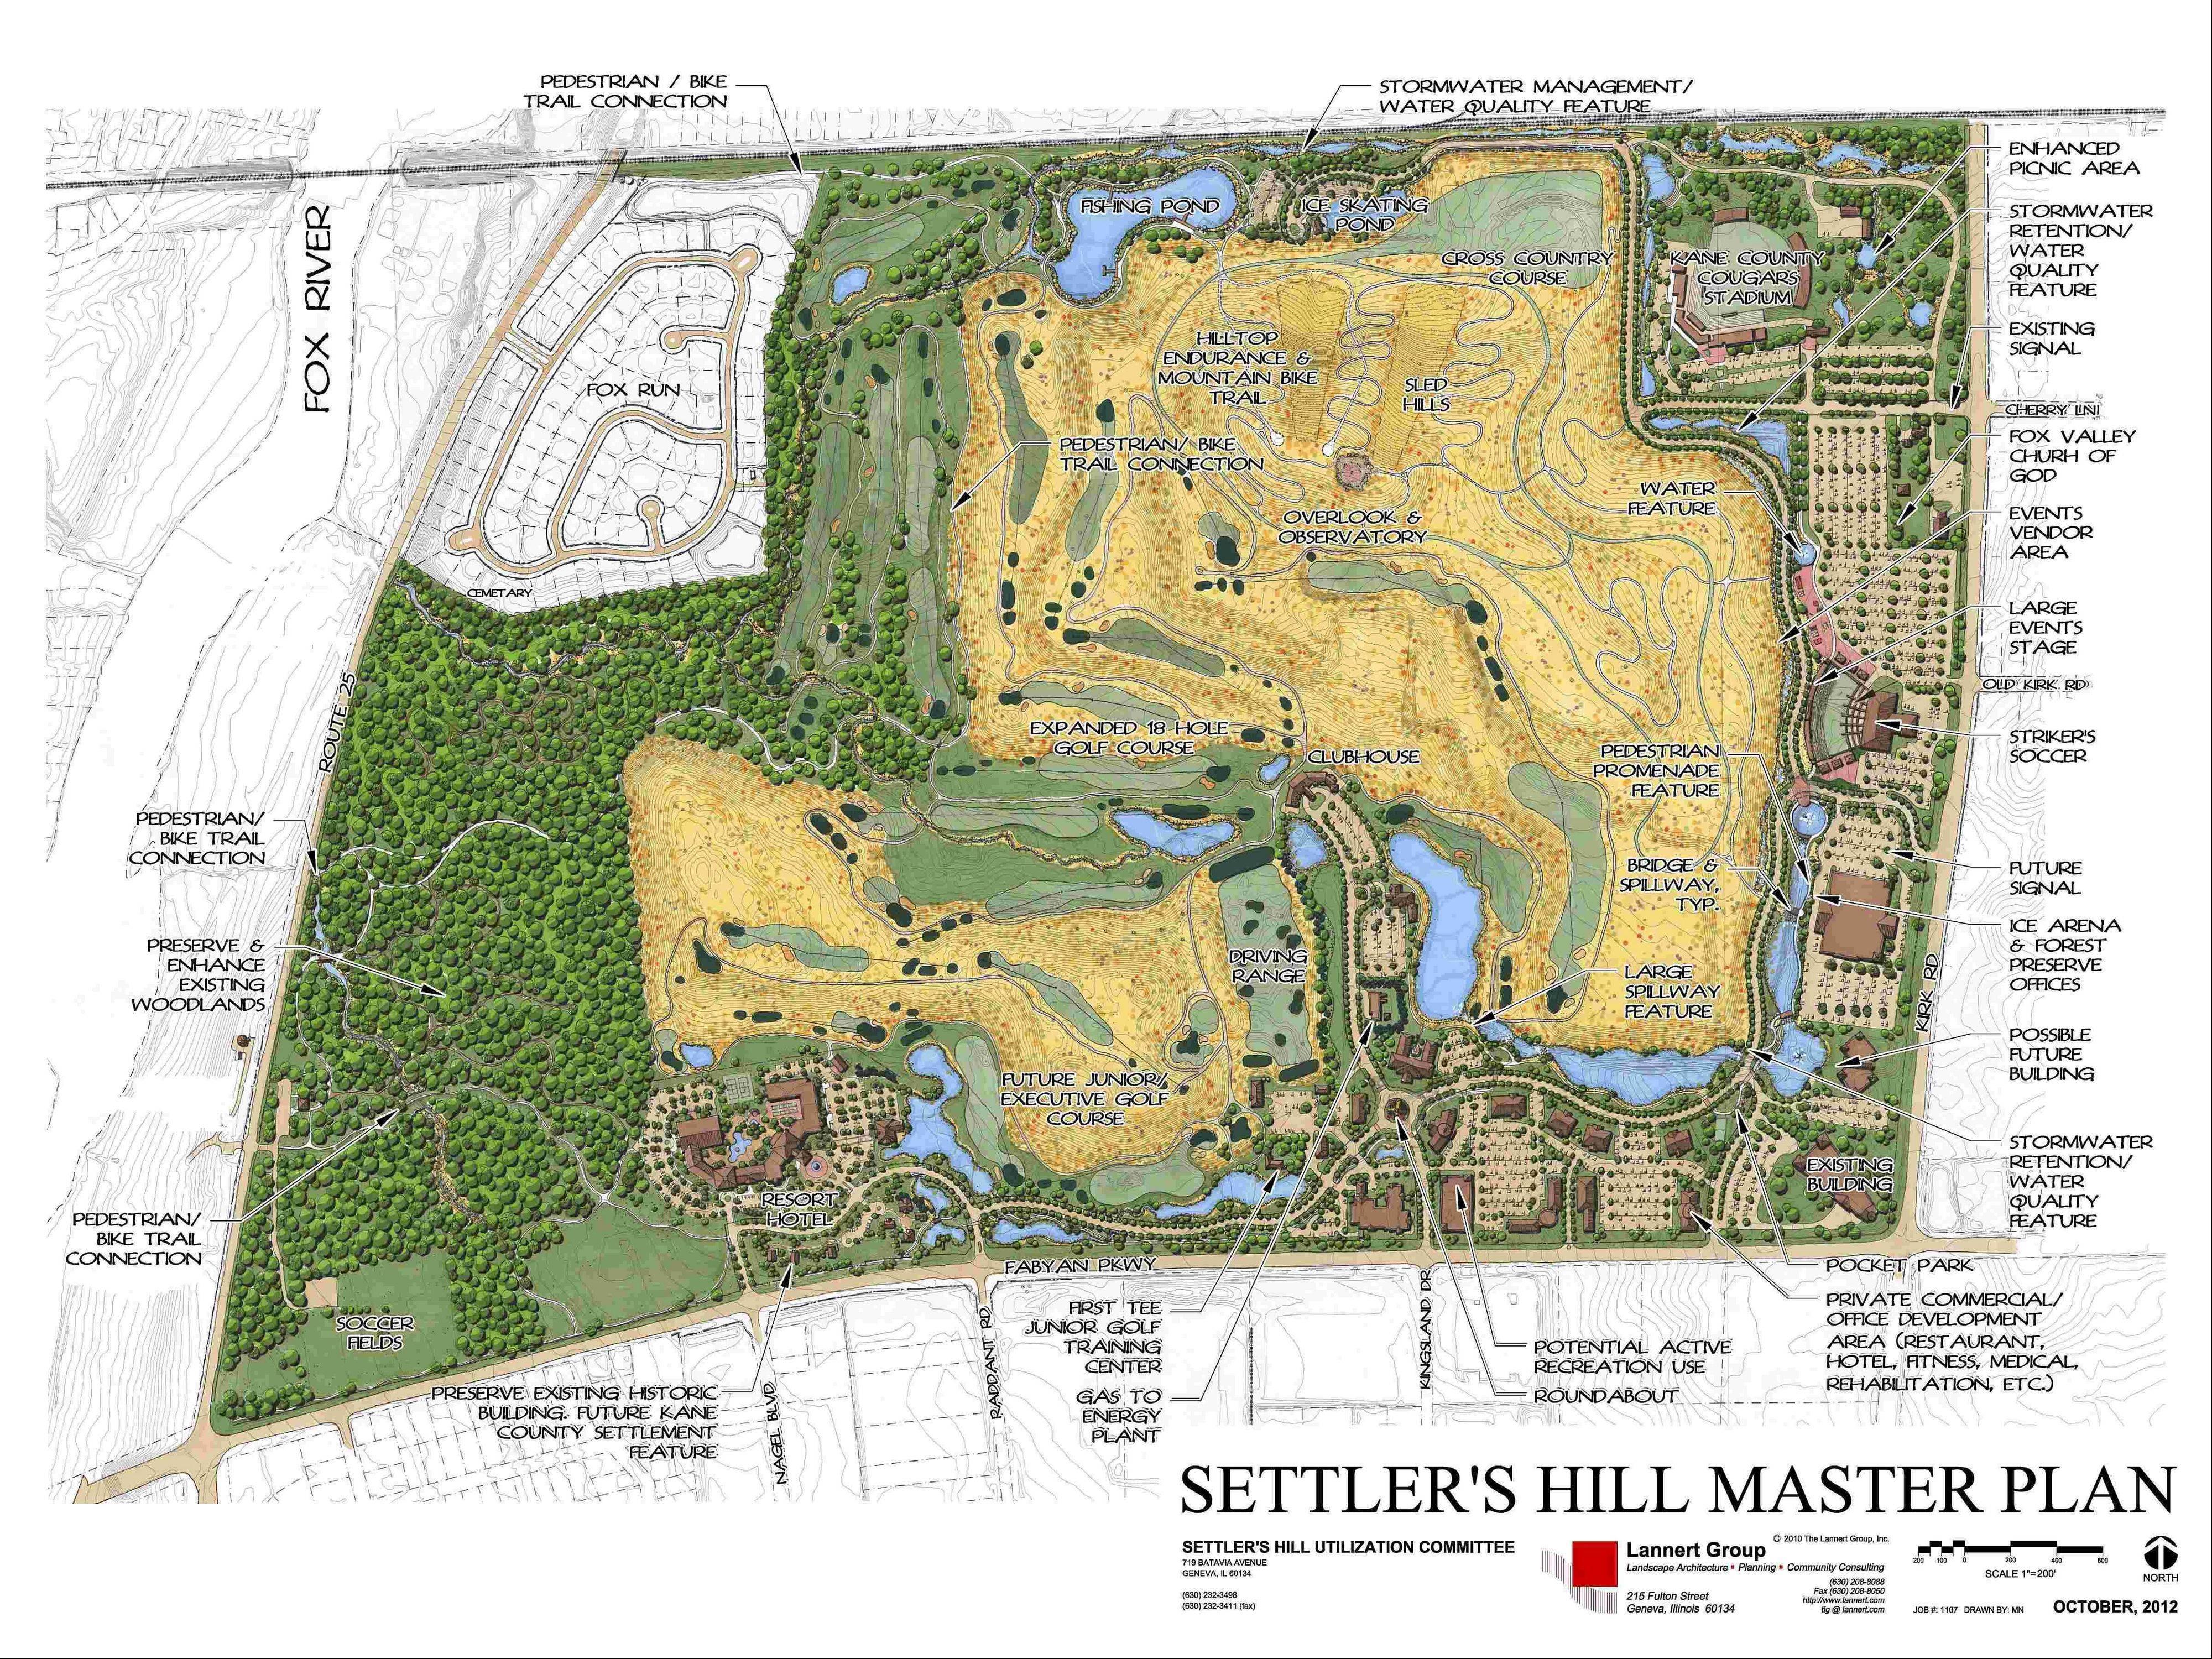 The Fabyan Parkway/Settler's Hill redevelopment concept plan